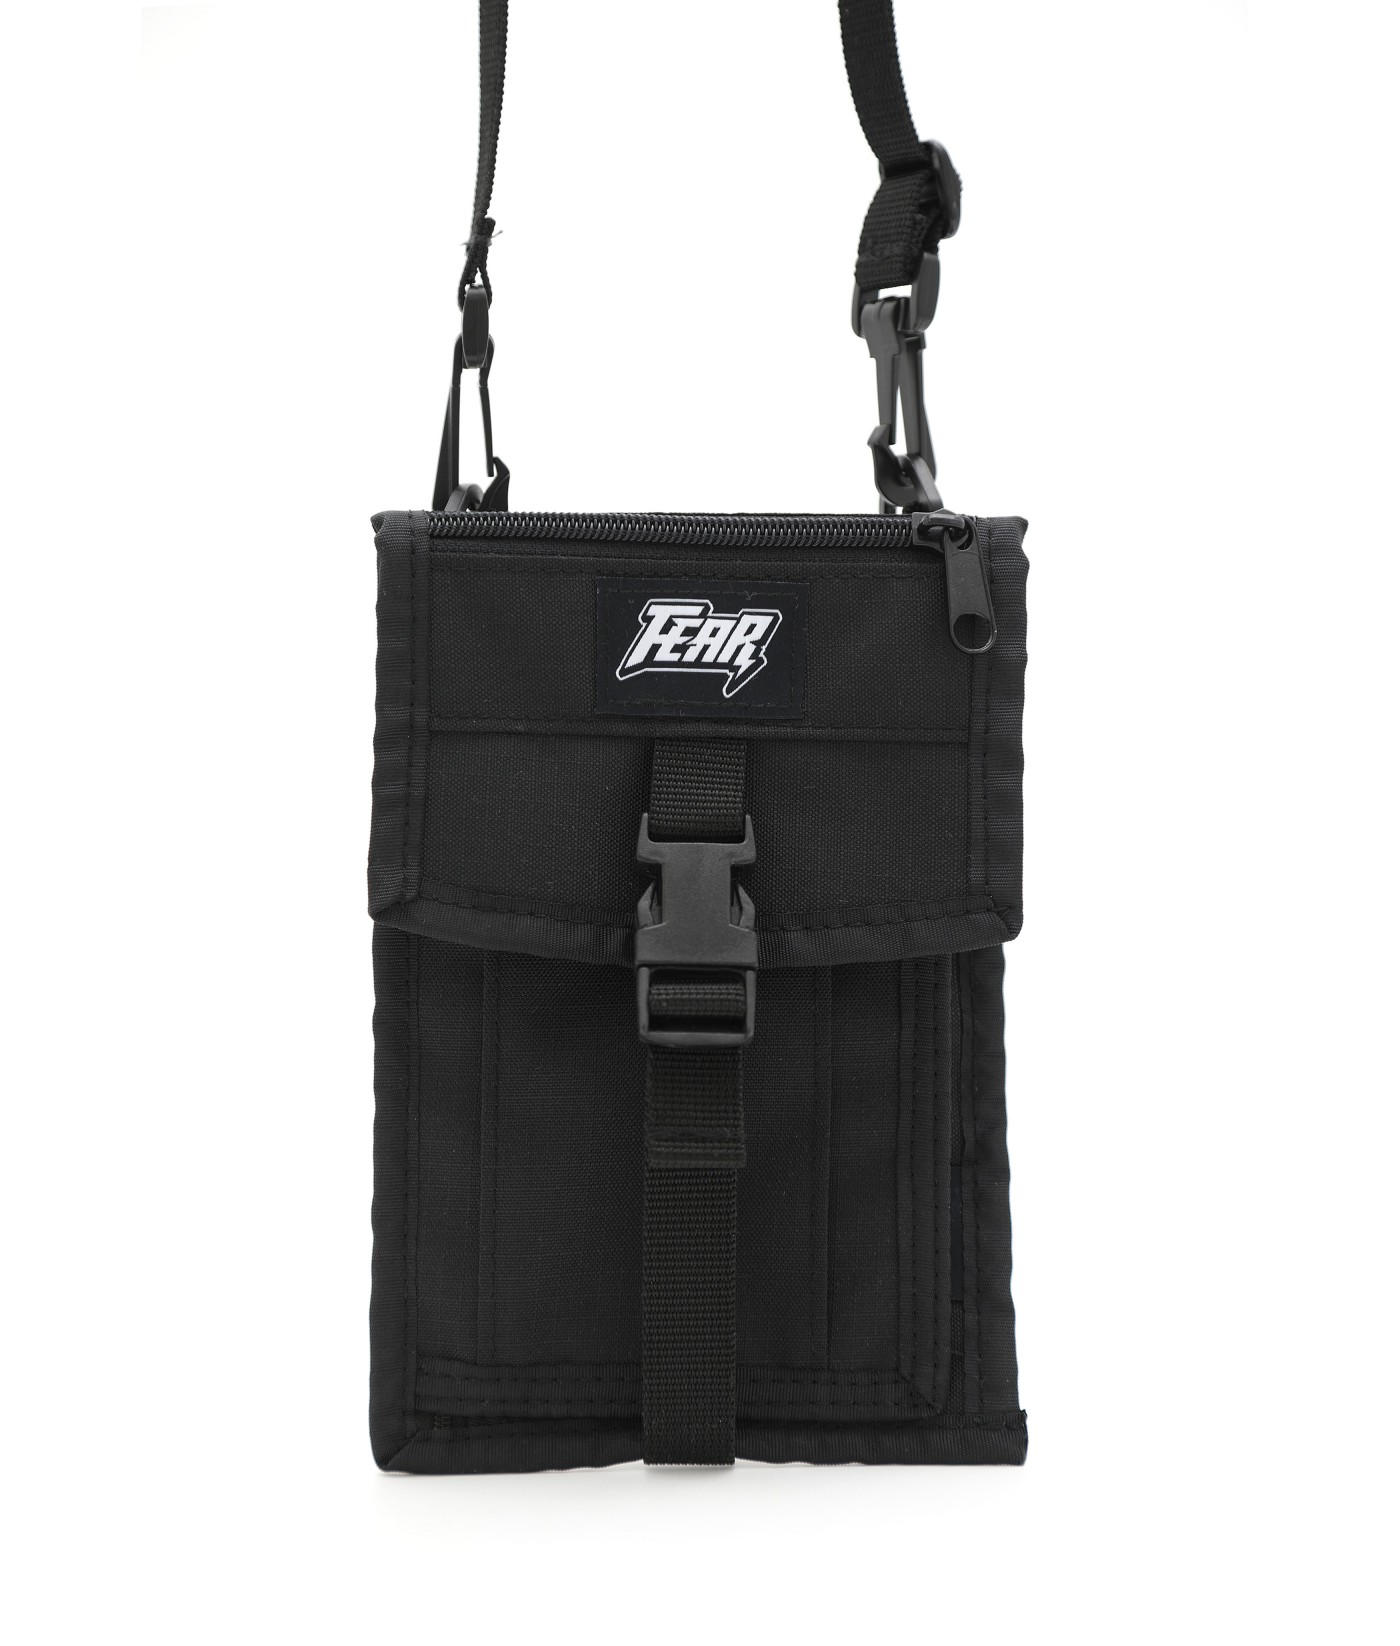 FEAR SHOULDER BAG